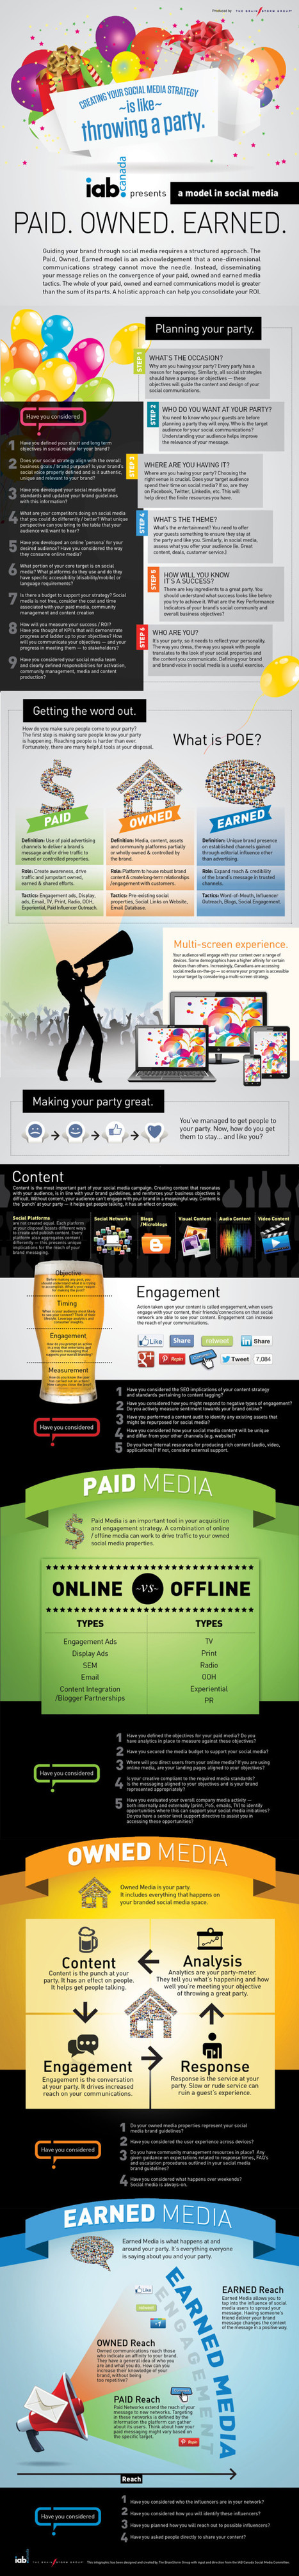 Infographic: What is POE? - Marketing Technology Blog | Digital Marketing Africa | Scoop.it